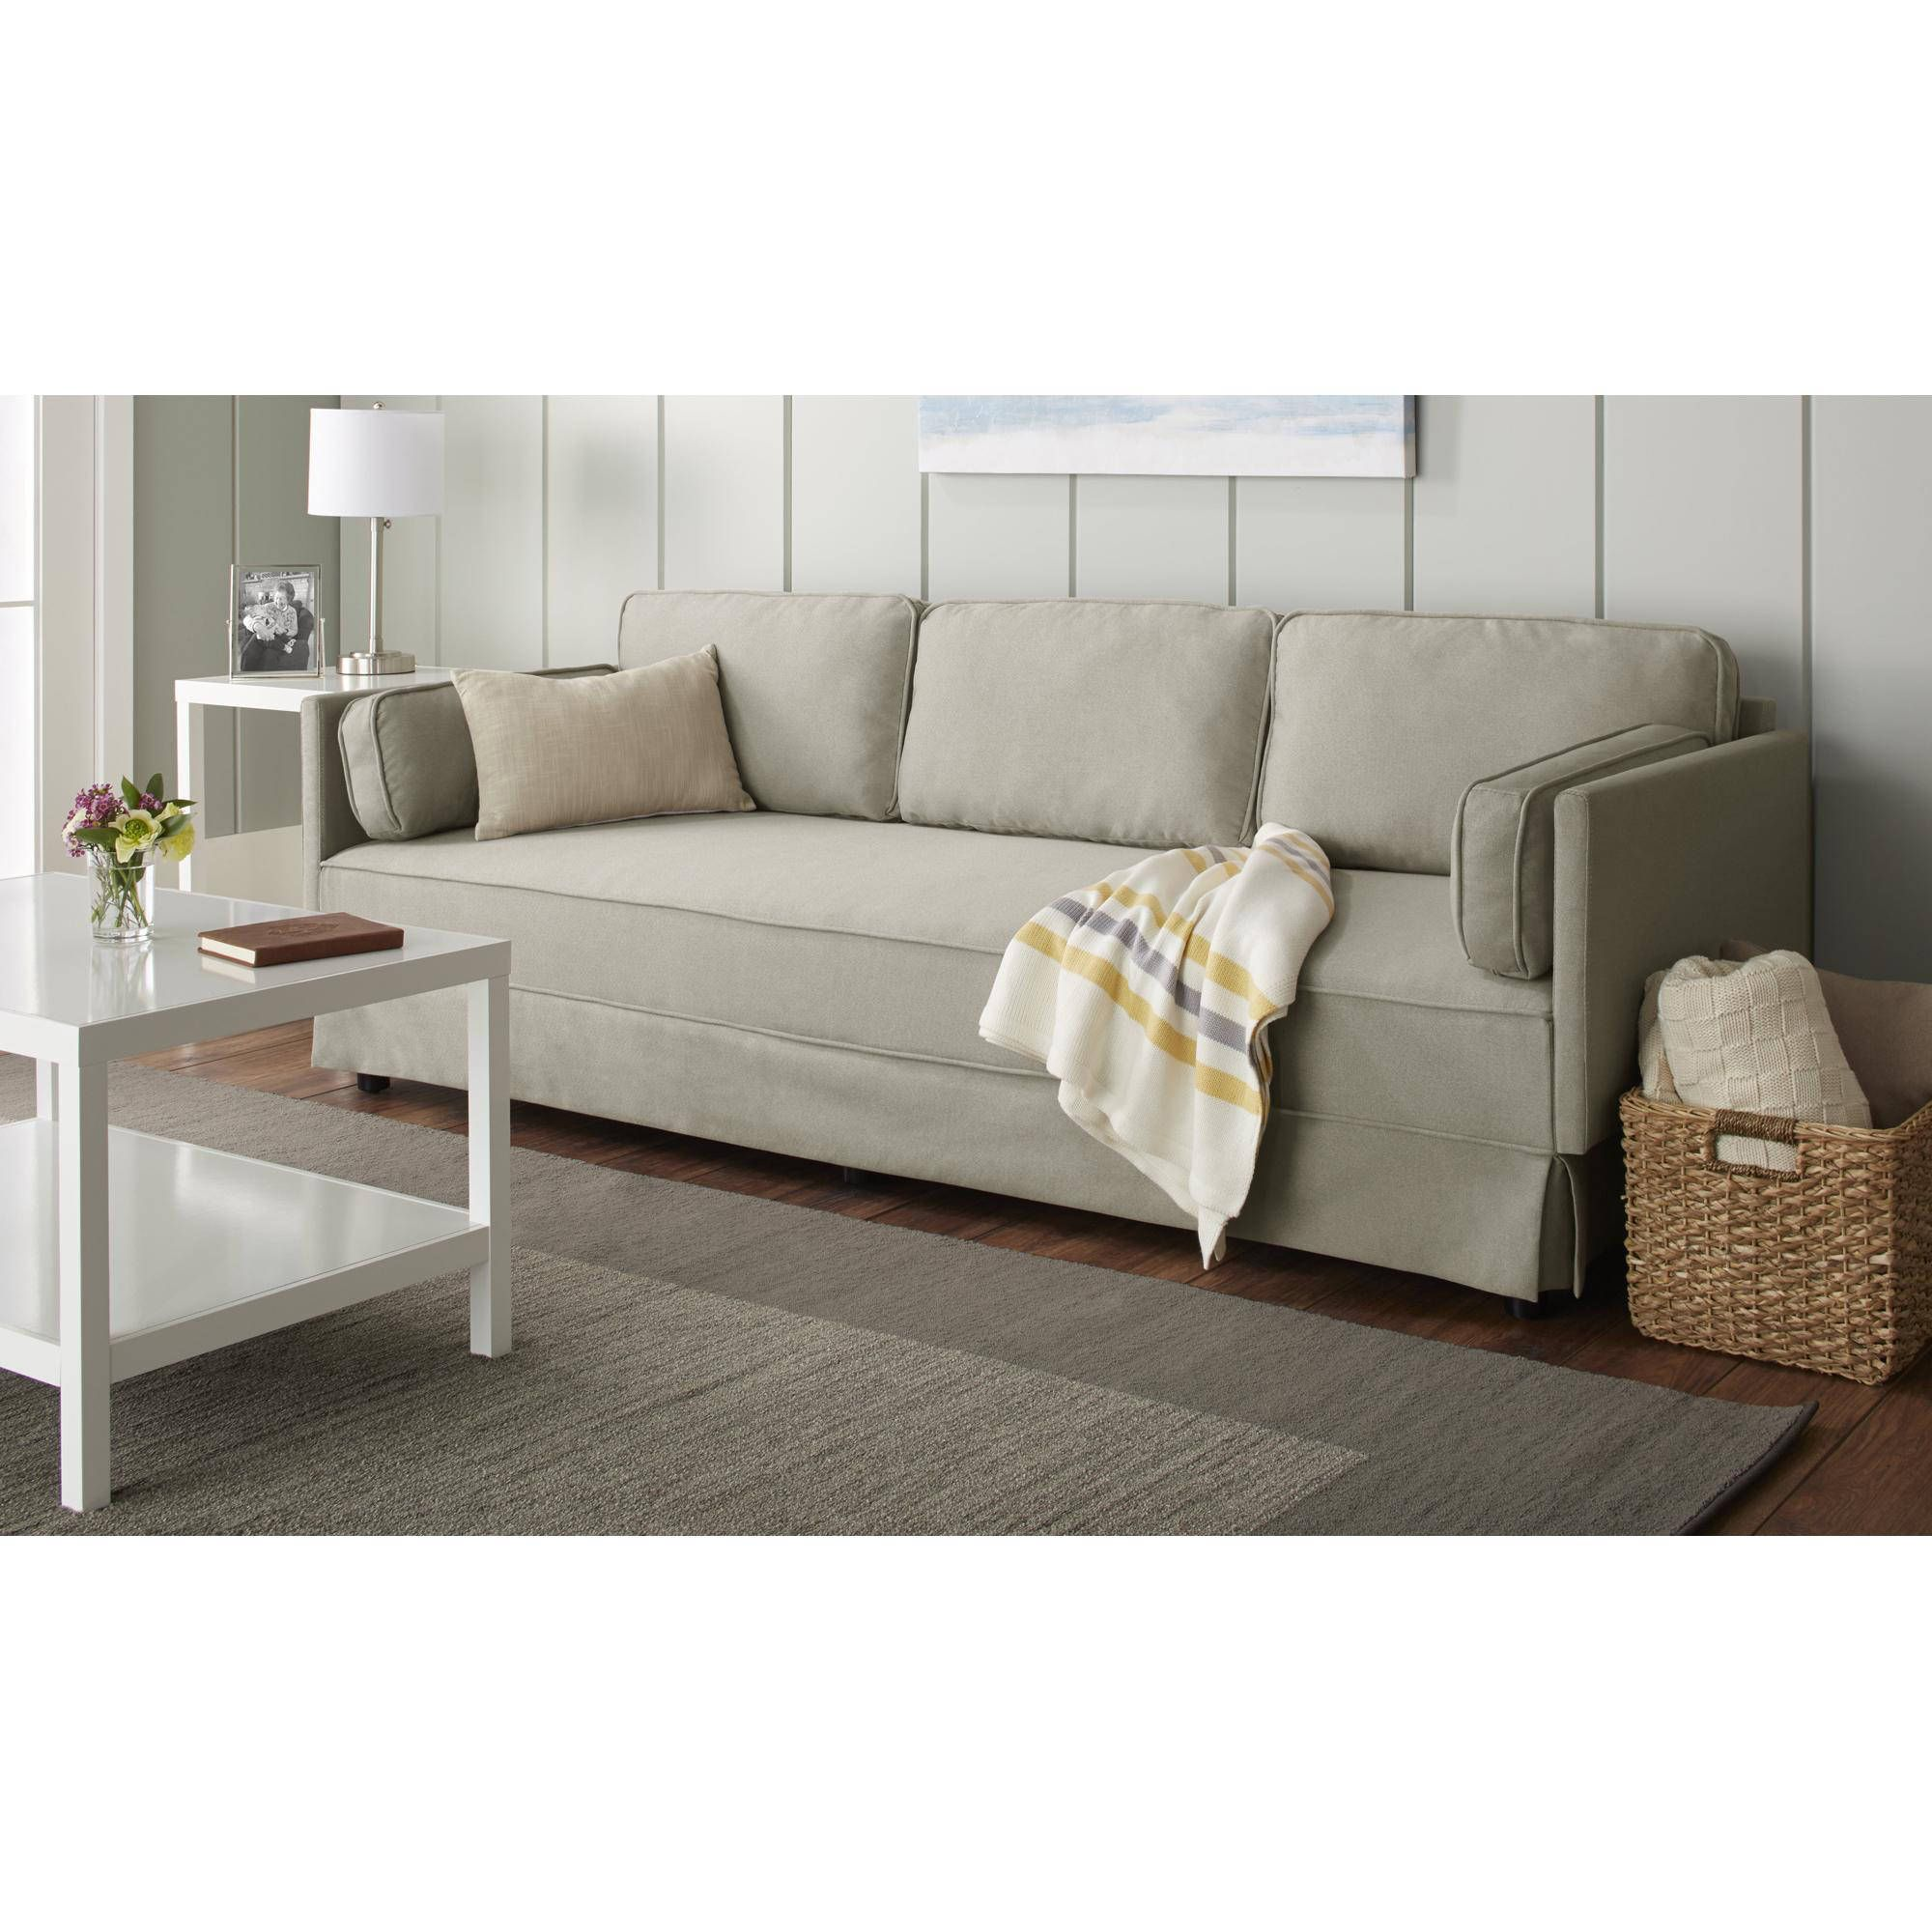 Sofas Under 400 Sofa Sofa Inspiration Couch And Loveseat